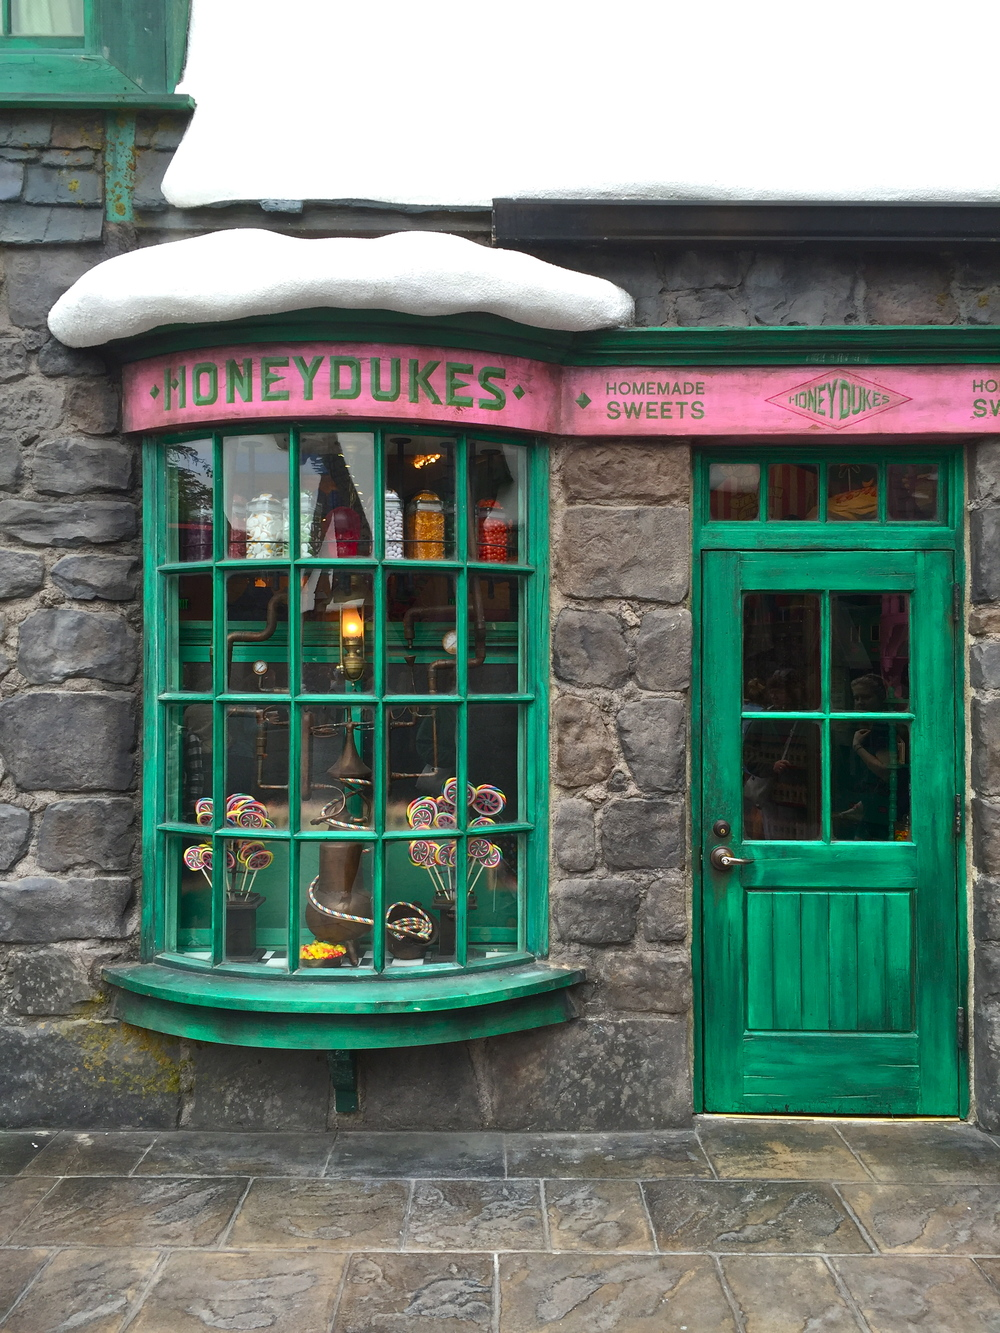 harrypotterworldhollywood_47.jpg